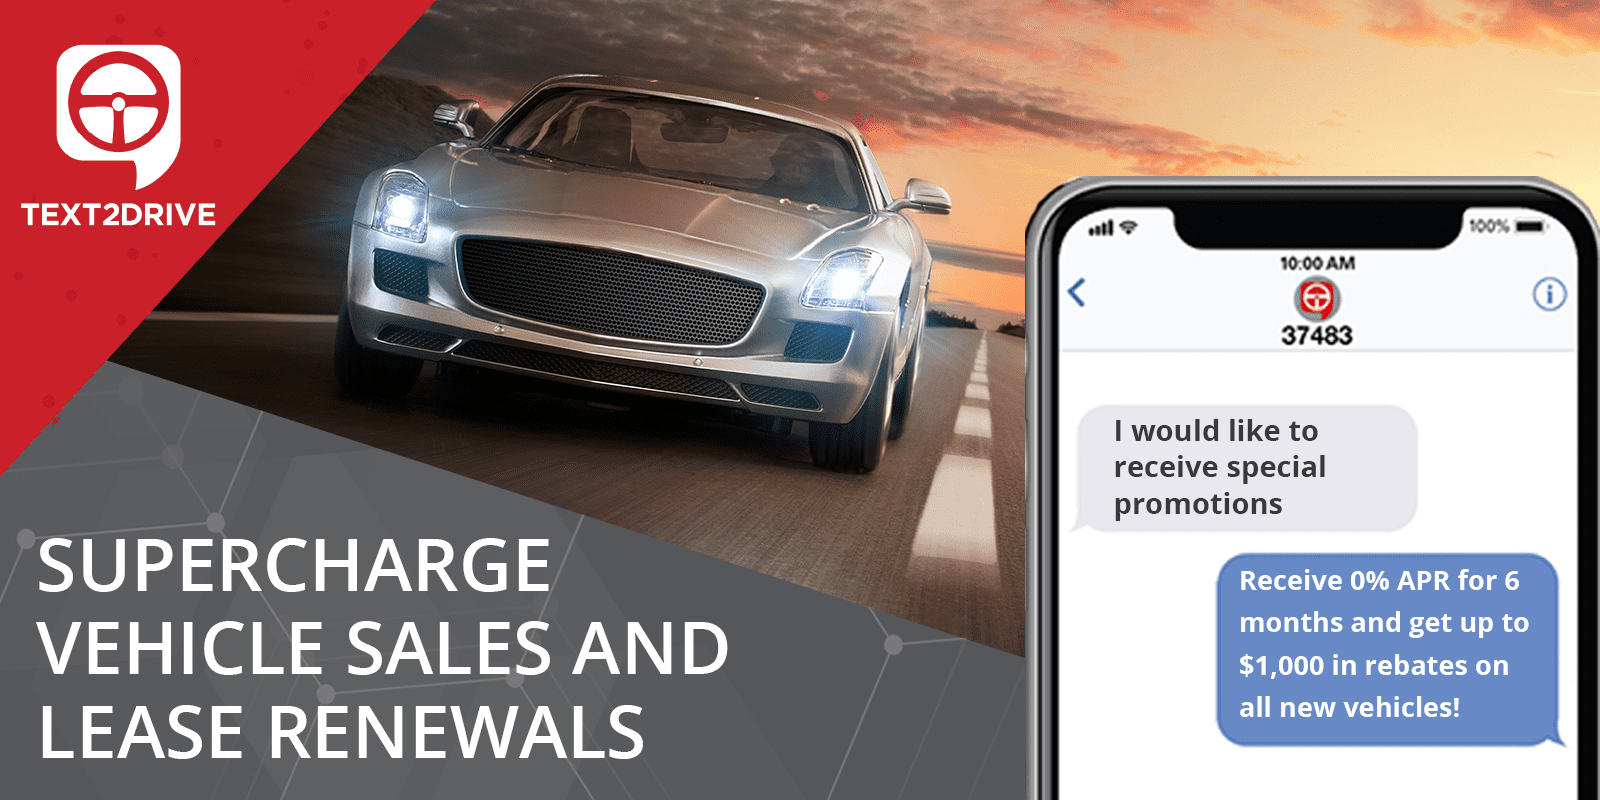 Supercharge Vehicle Sales And Lease Renewals